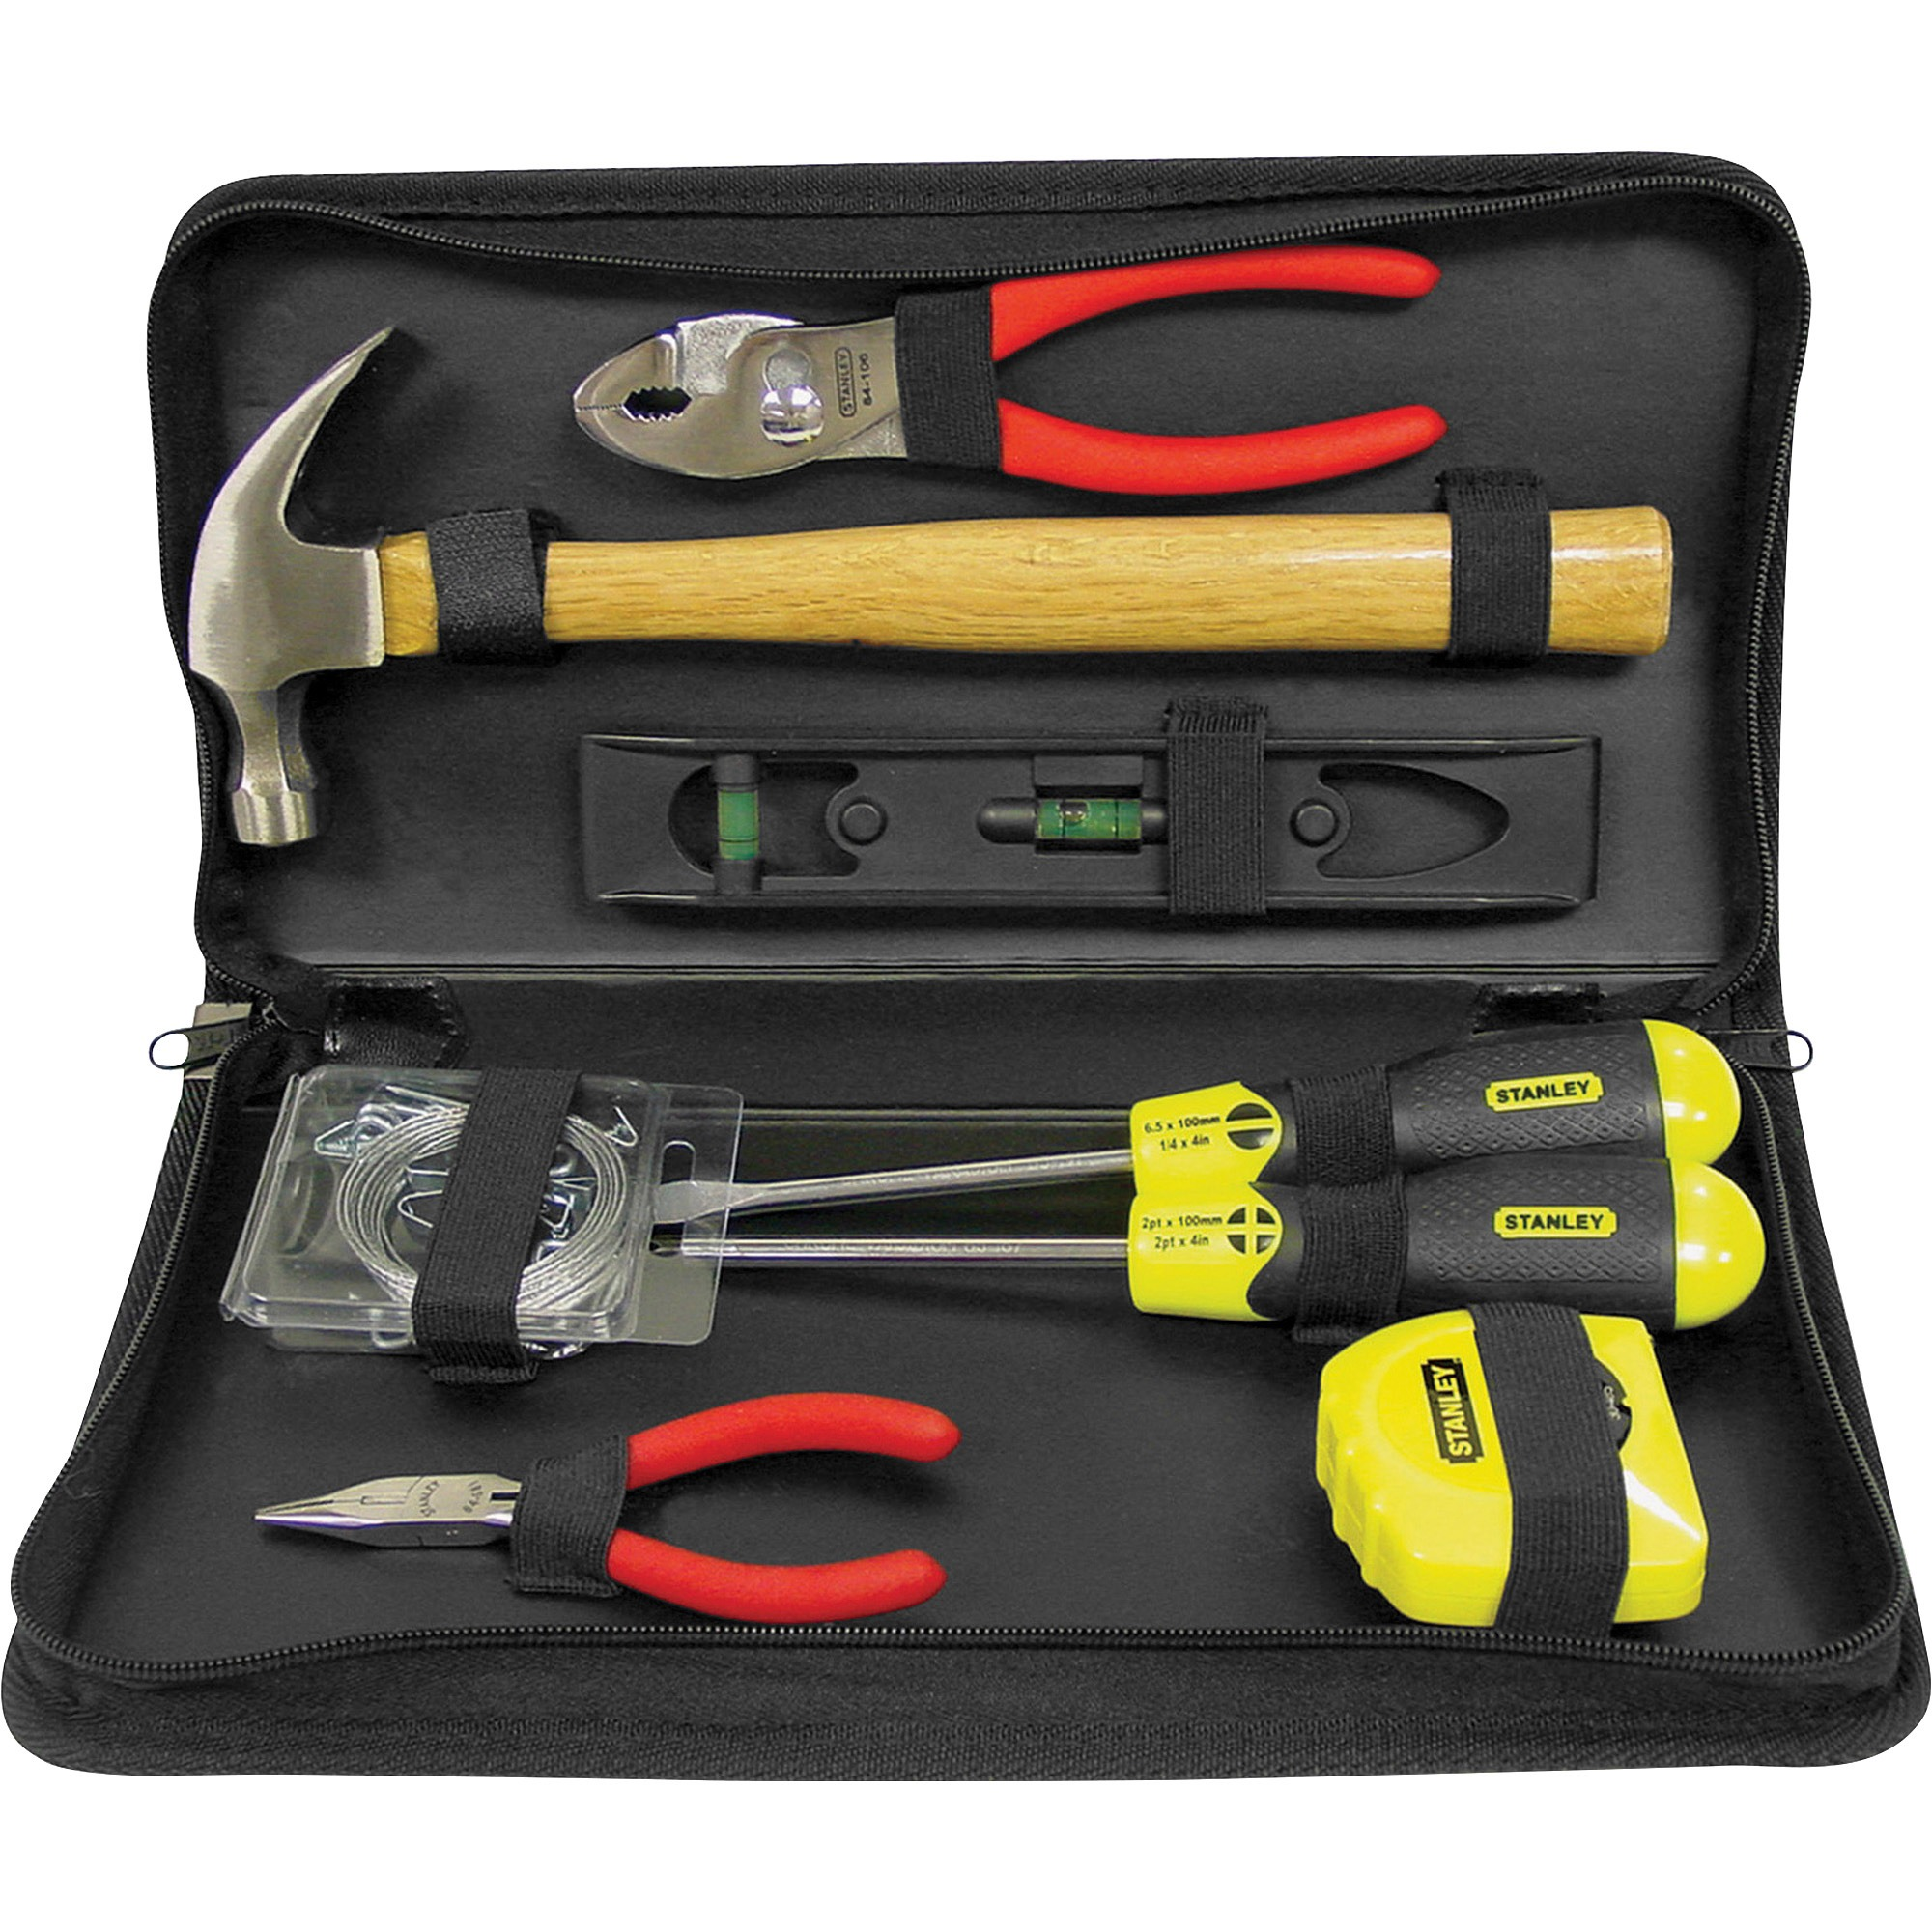 Stanley, BOS92680, Home/Office Toolkit, 1, Black